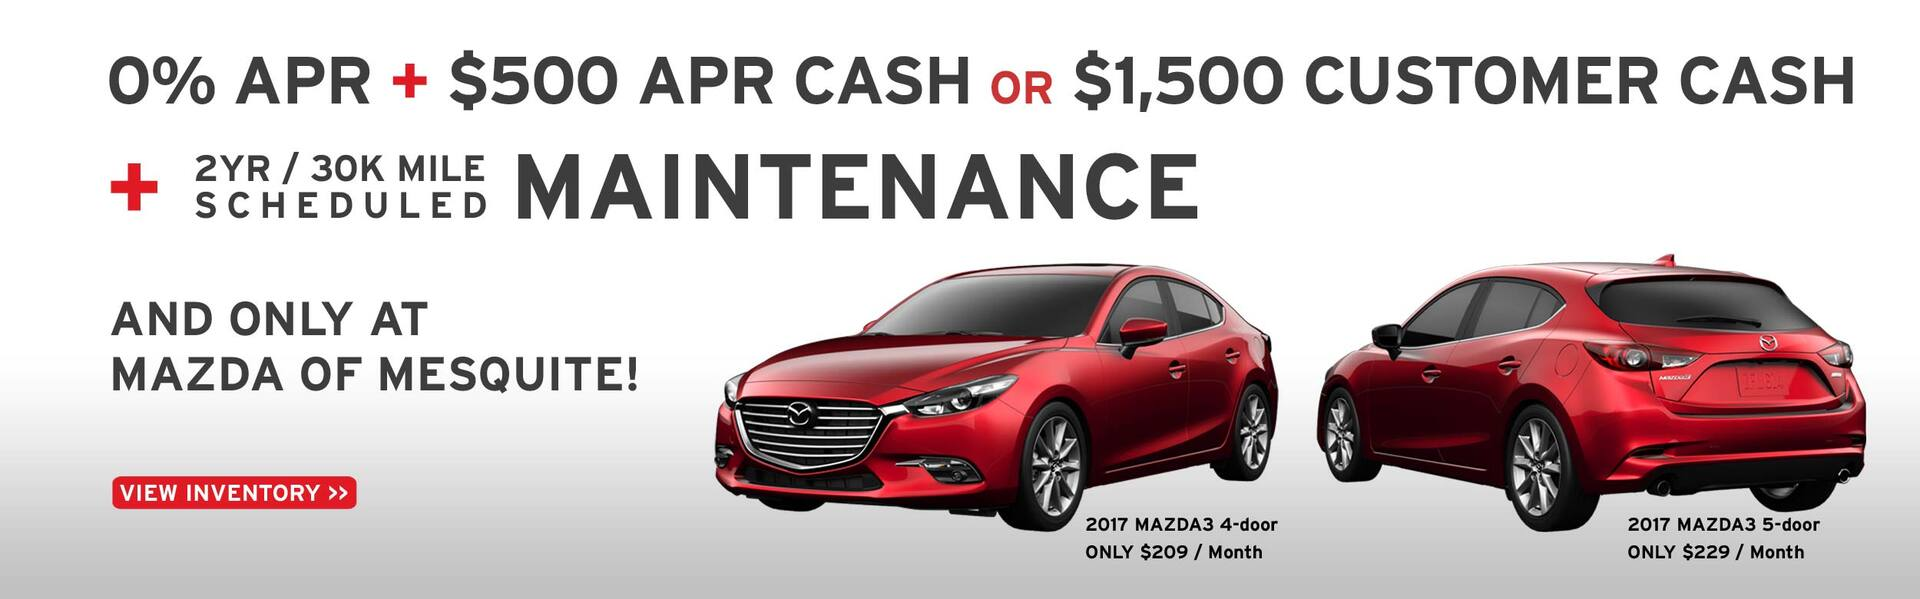 mazda dealership mesquite tx used cars mazda of mesquite find mazda3 special offers discounts dallas texas